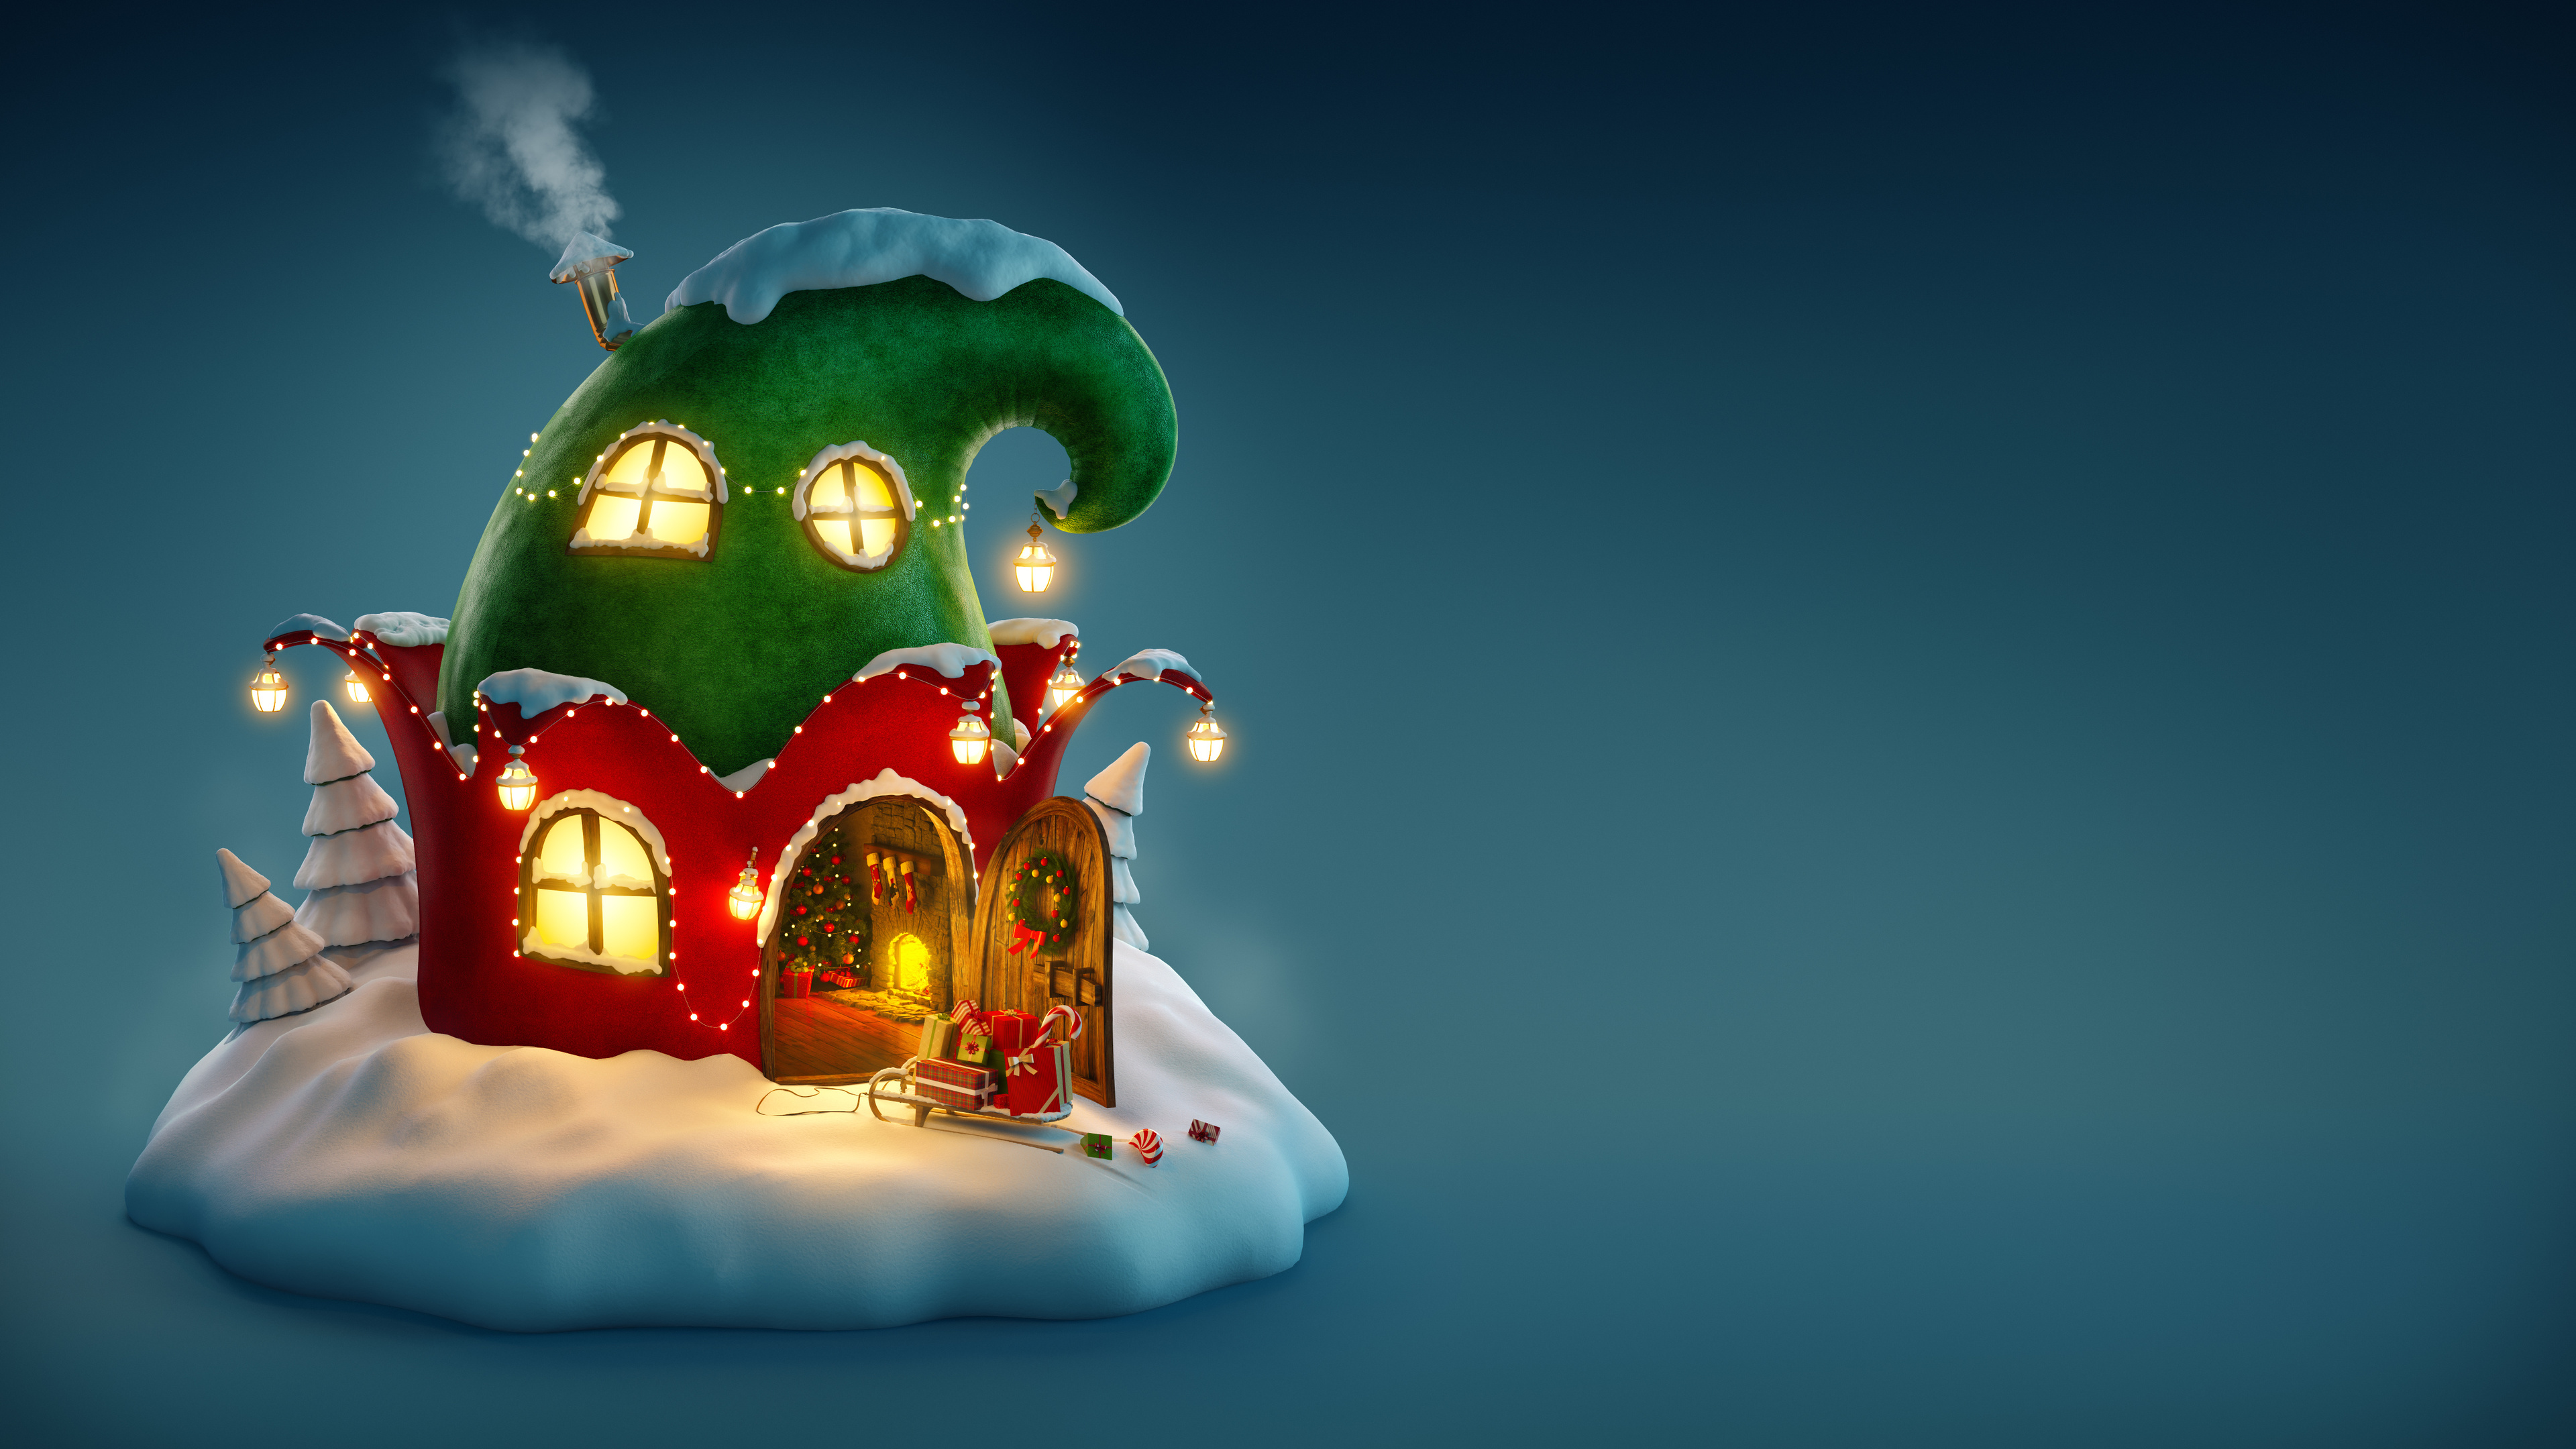 4k christmas fairy house 1543946350 - 4k Christmas Fairy House - holidays wallpapers, christmas wallpapers, celebrations wallpapers, 4k-wallpapers